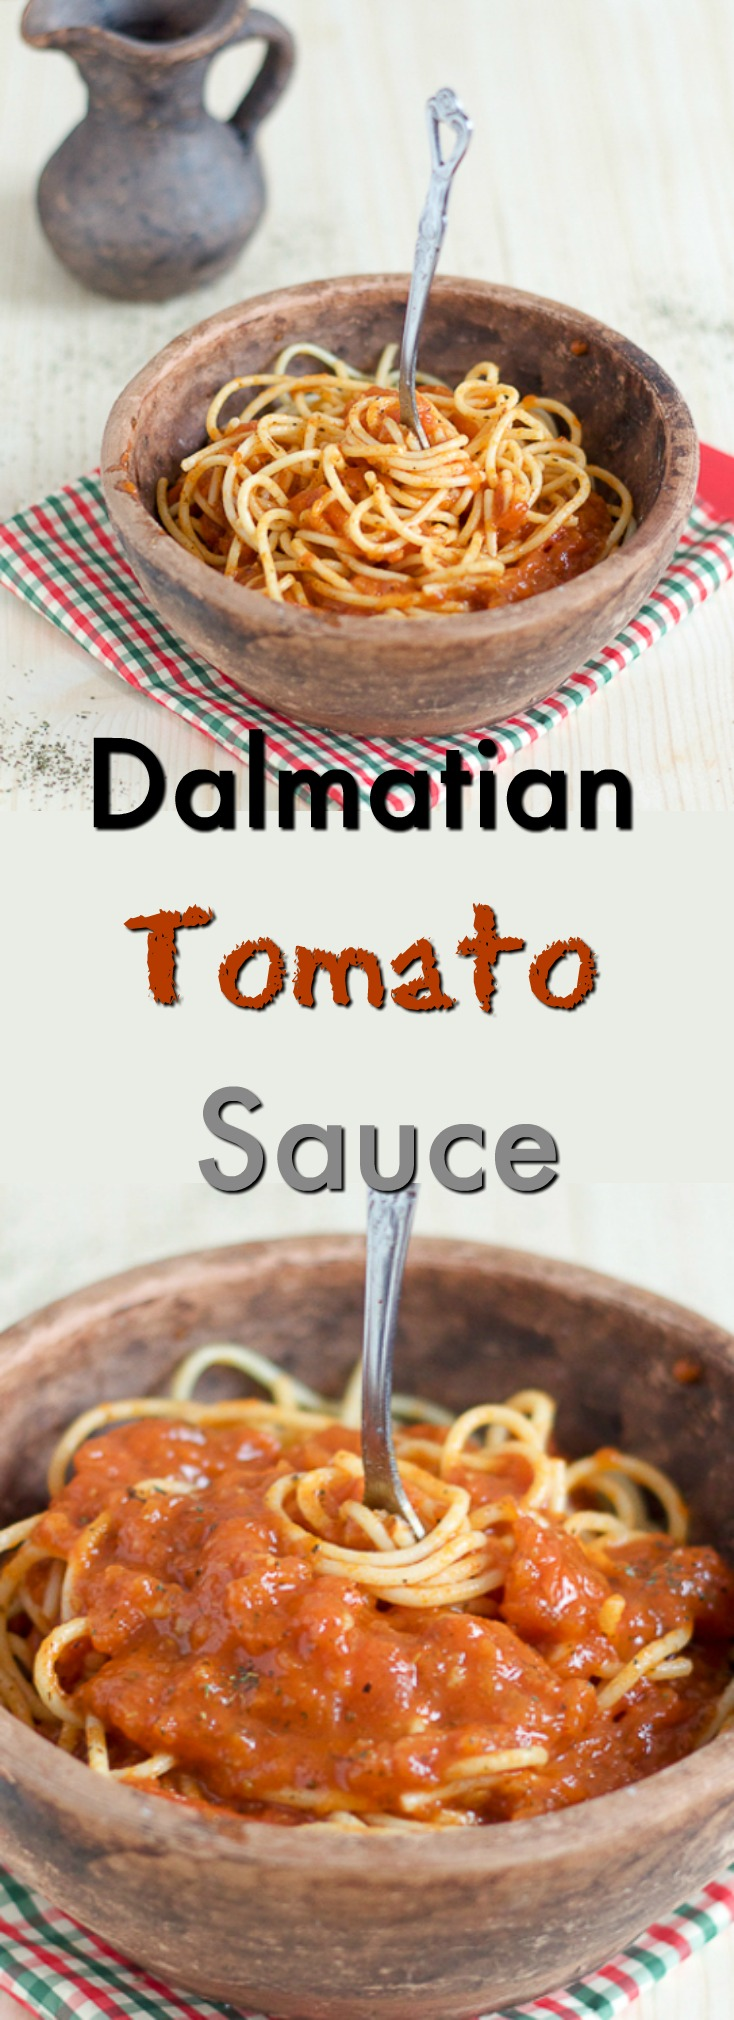 Dalmatian tomato sauce (salsa/ paradajz sos) is one of the simplest recipes for the freshest, most rich tomato sauce you've ever tried, coming to you straight from the Balkan coast. It takes 1 hour from start to finish, and keeps in fridge for a few days.